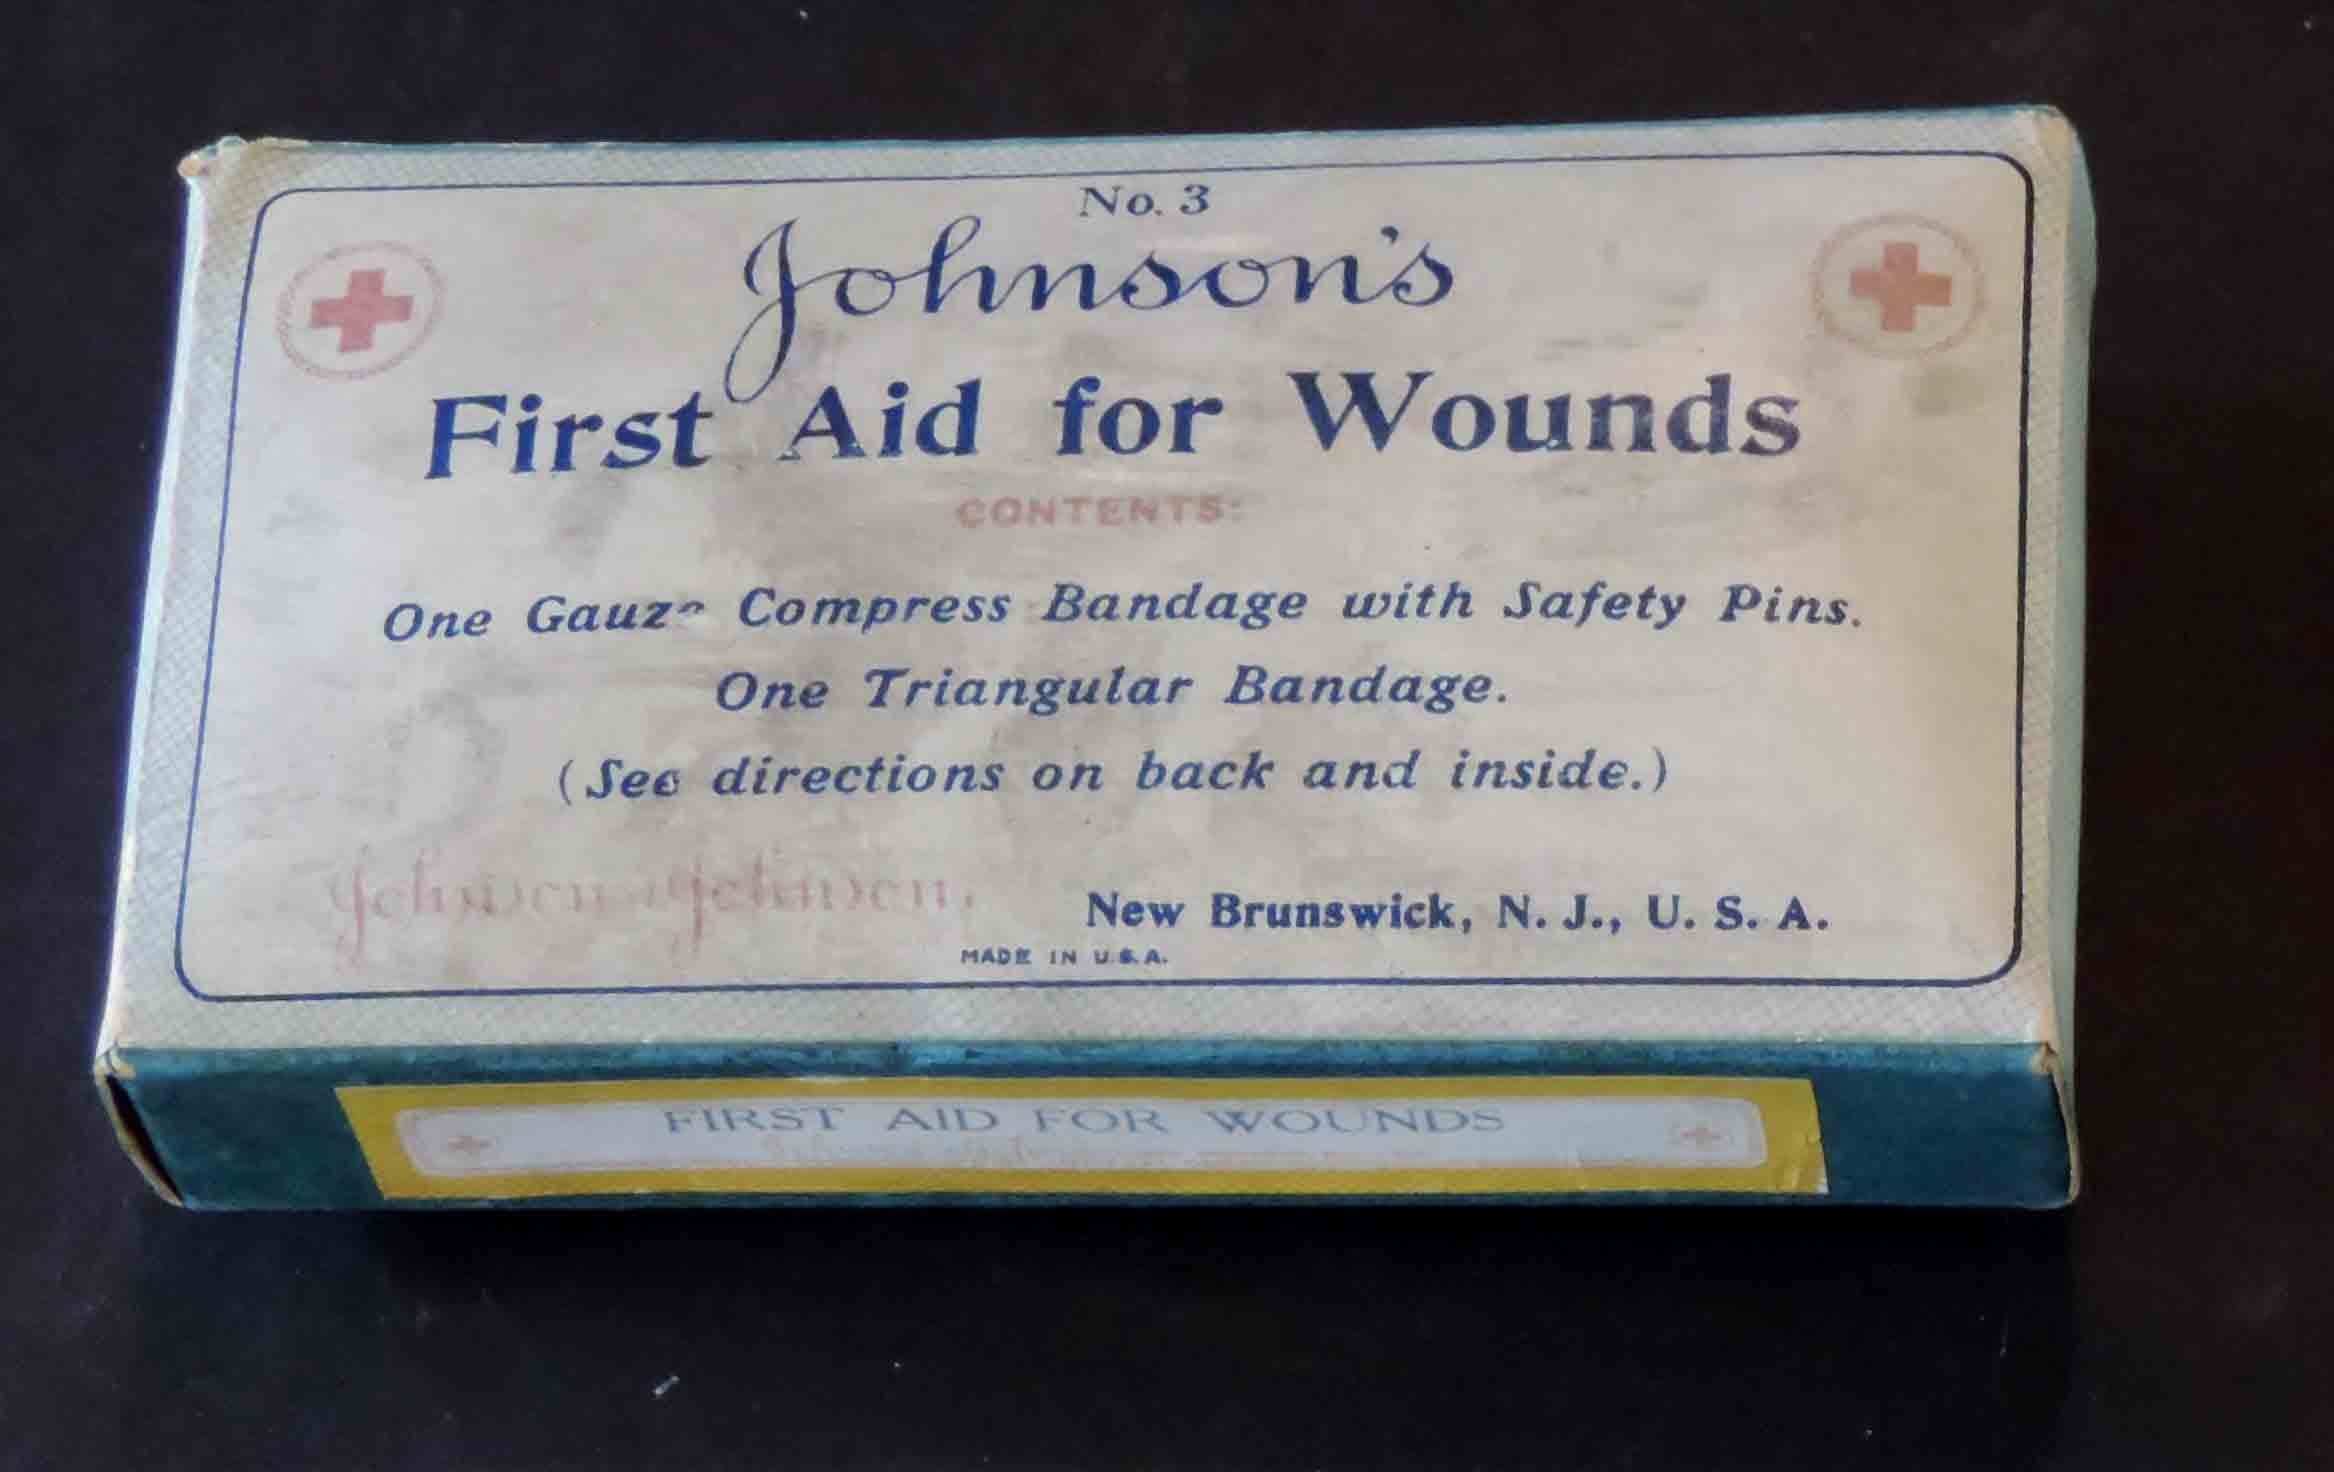 One of the Johnson & Johnson First Aid products that you can find in the National Air and Space Museum. This one's from our archives, but you can see one at the Smithsonian as well!  Image: Johnson & Johnson Archives.